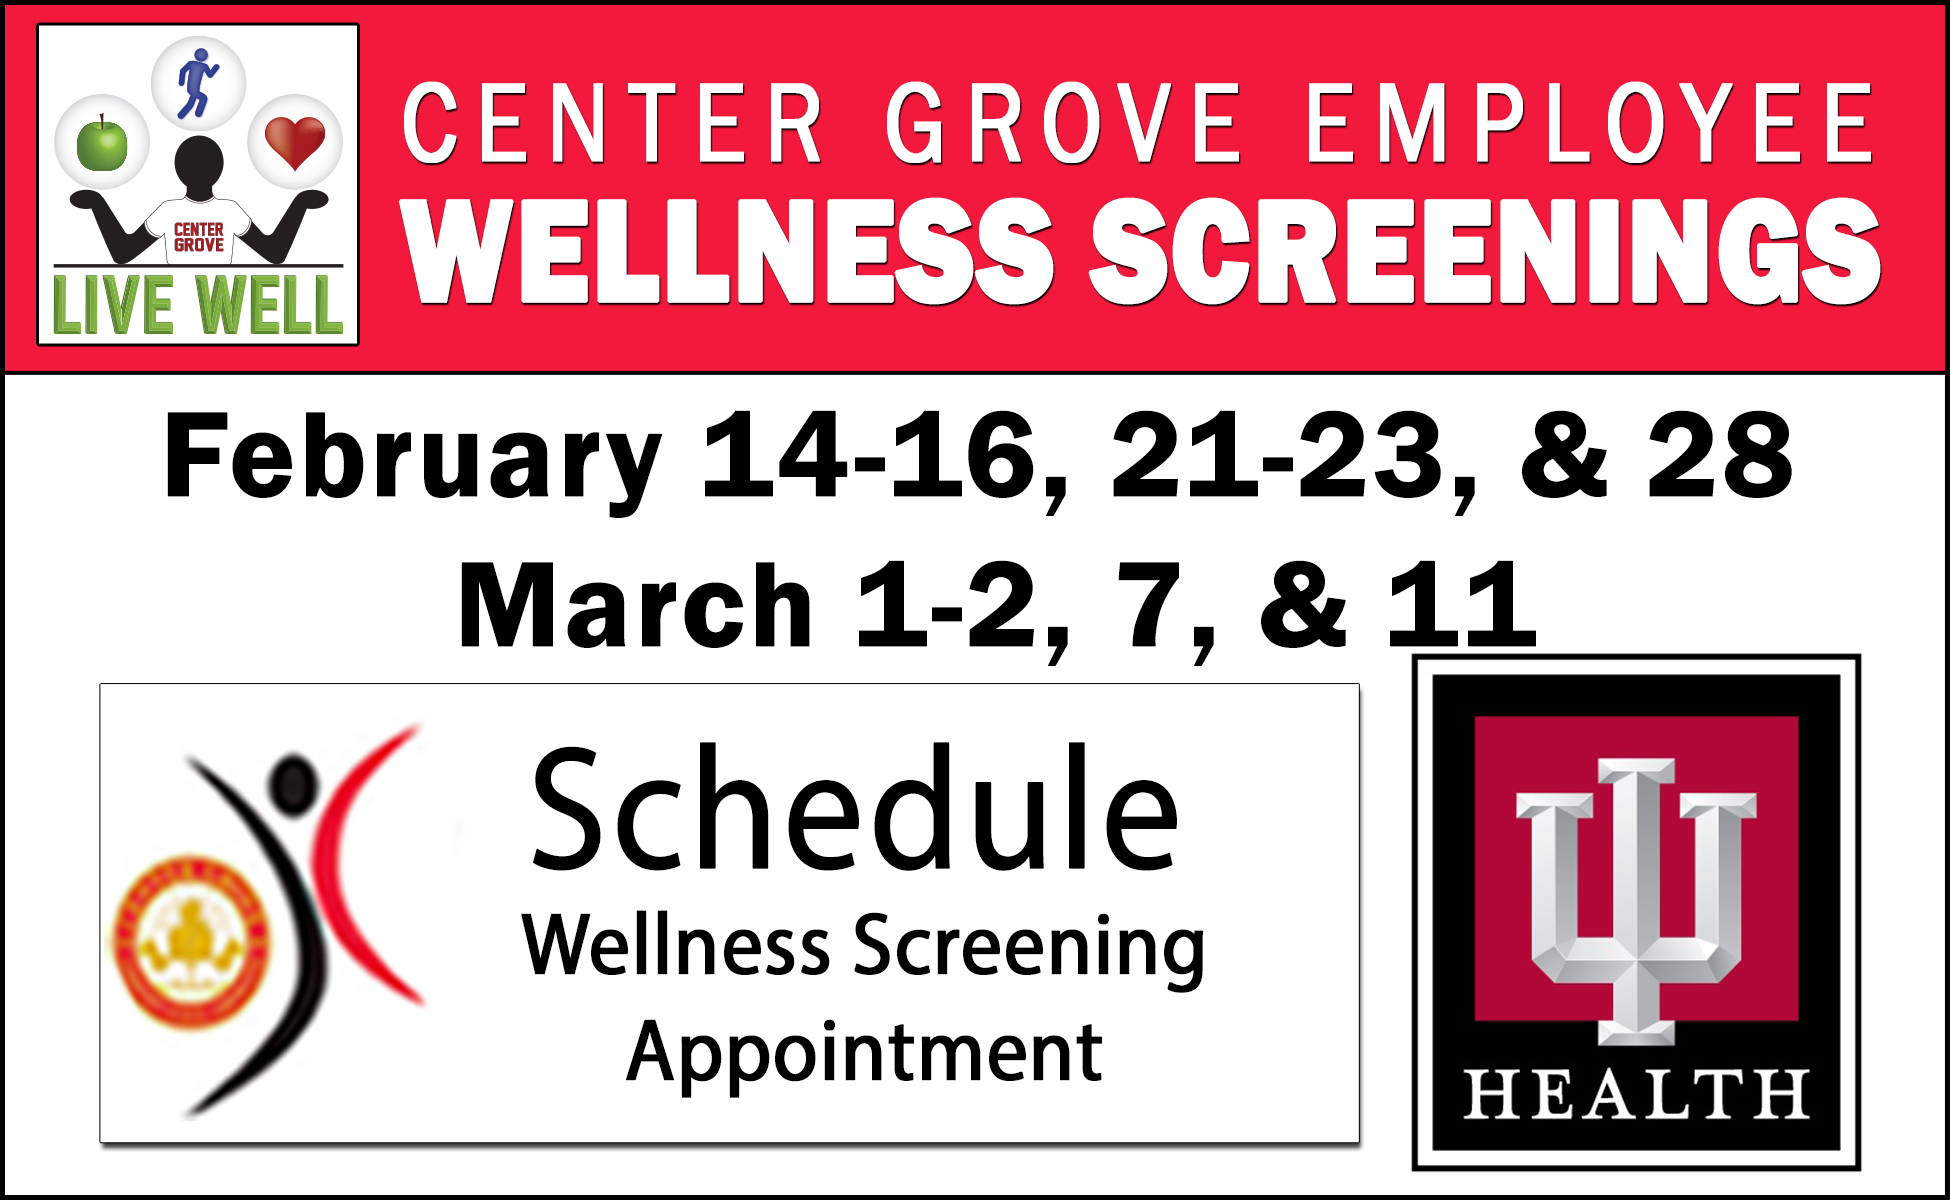 Employee Wellness Screenings